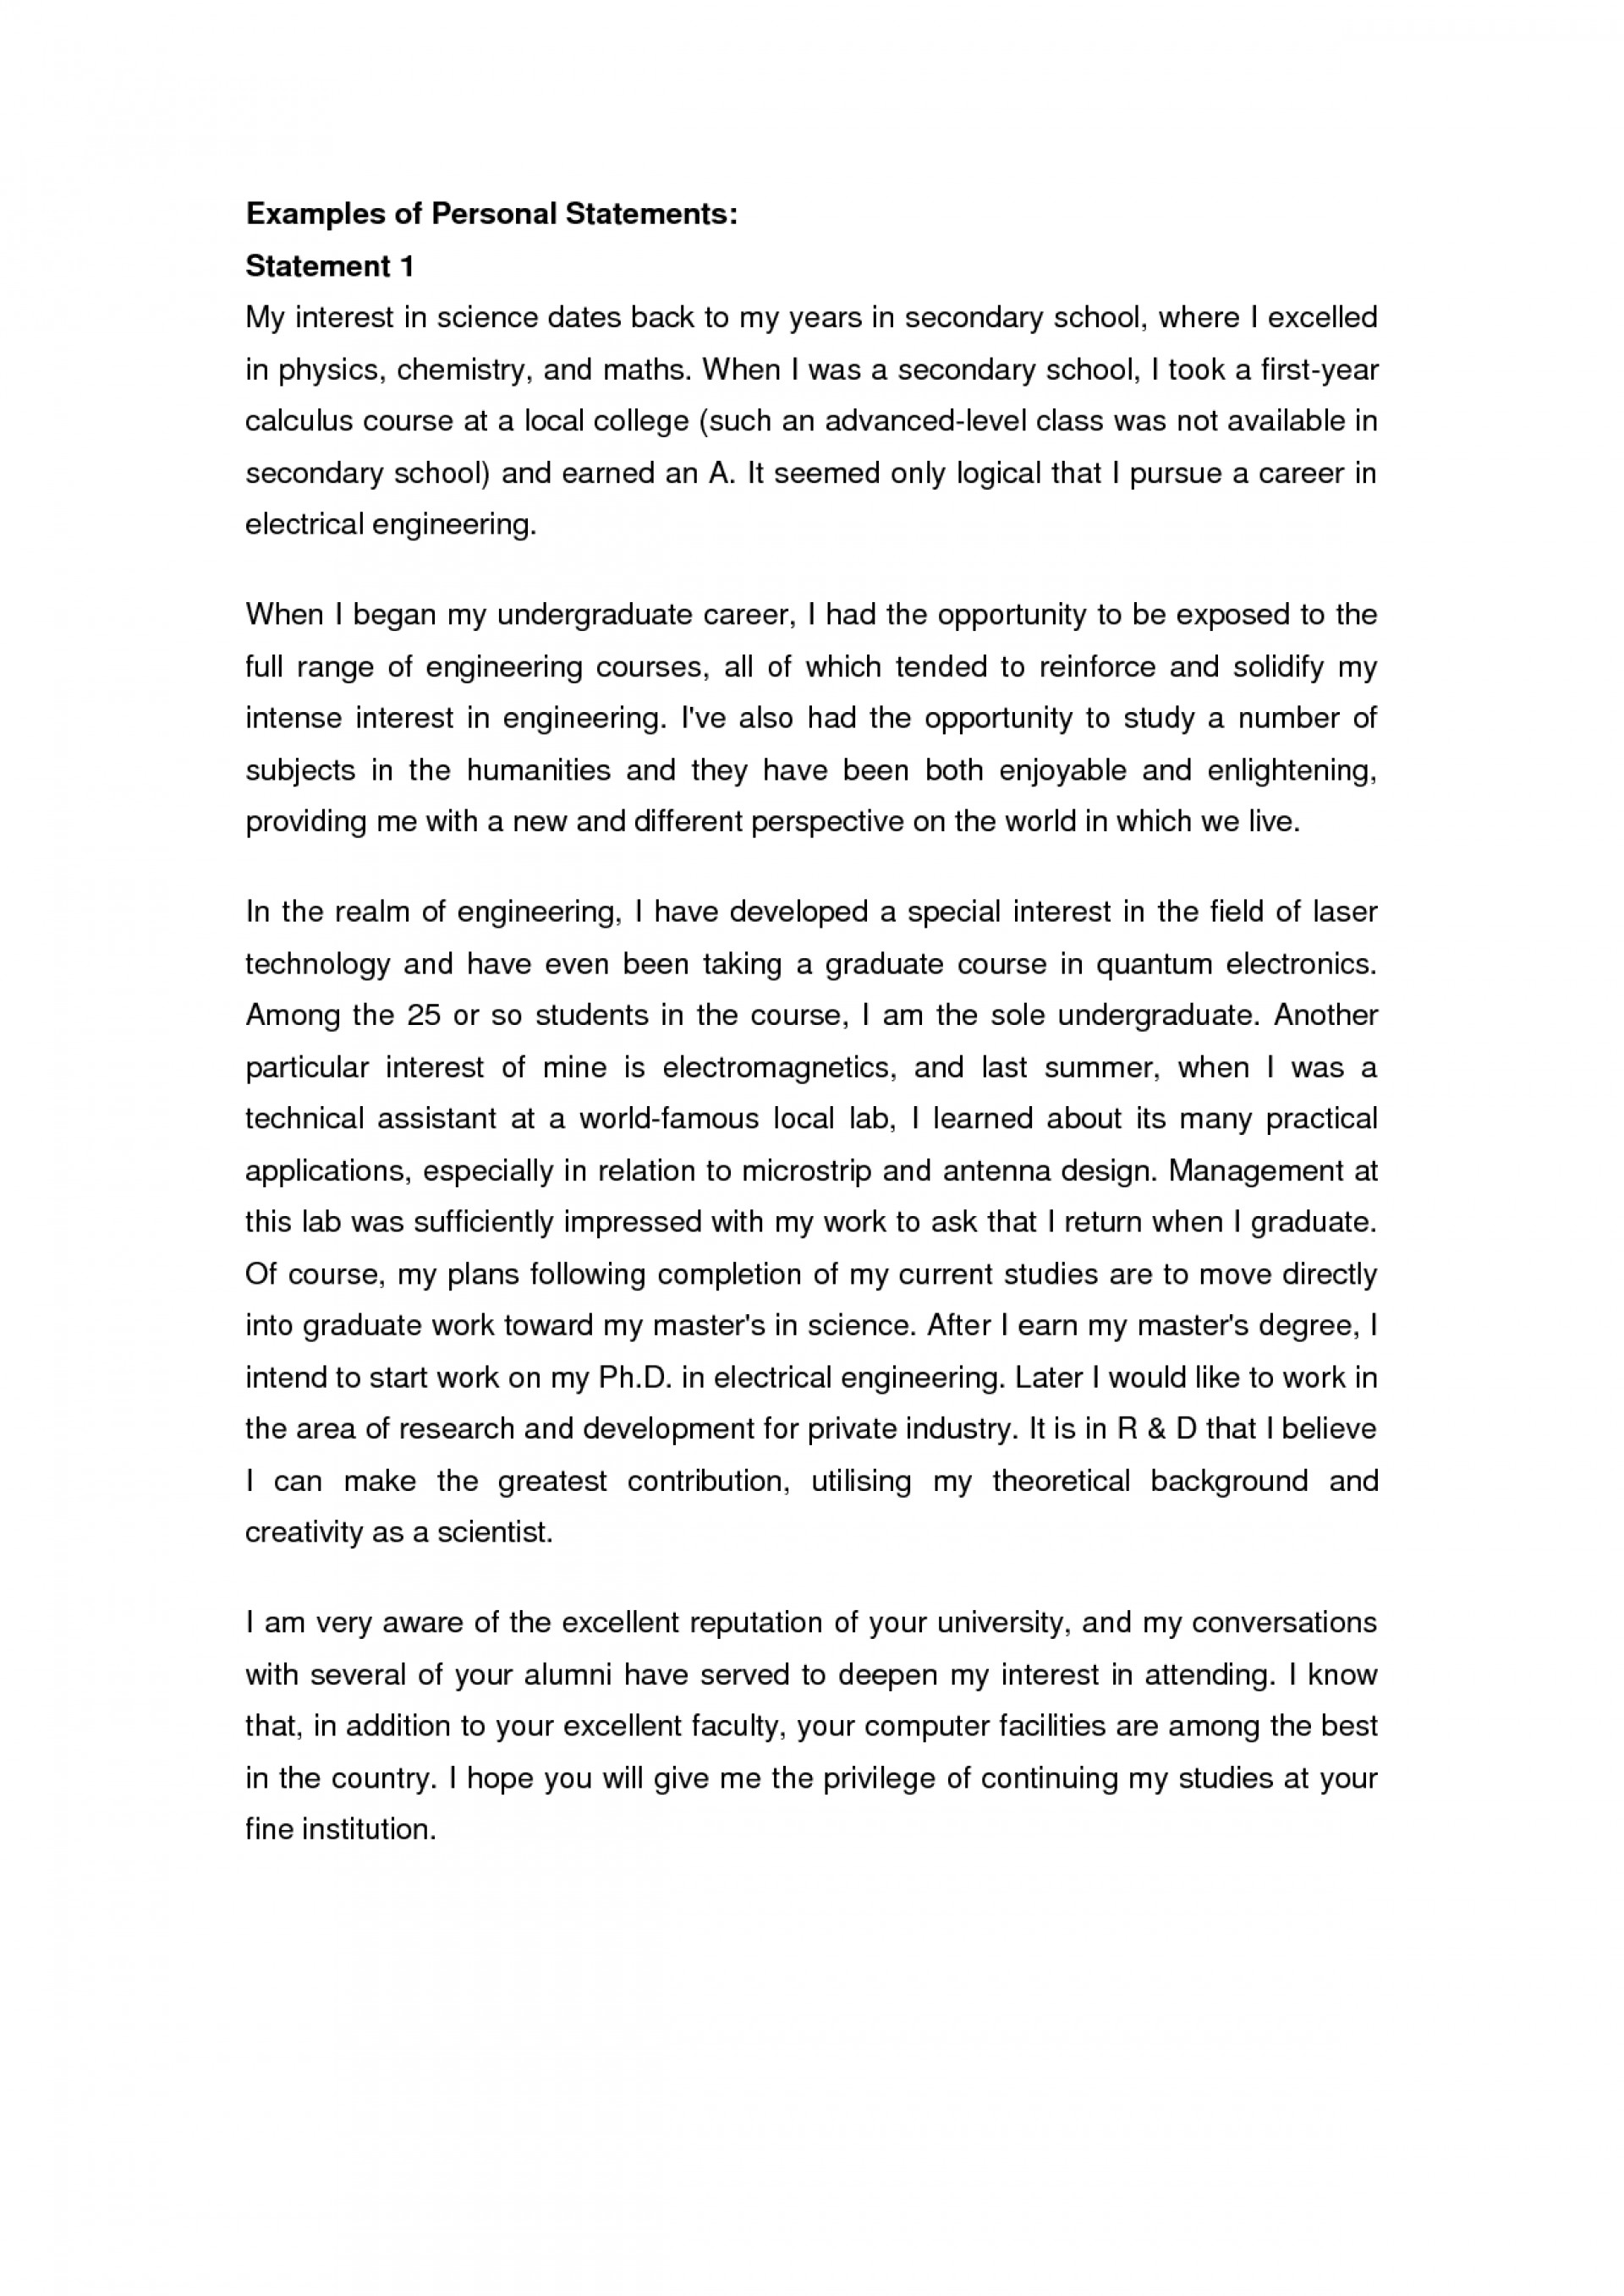 001 College Personal Statement Essays Marvelous Essay Examples 1920